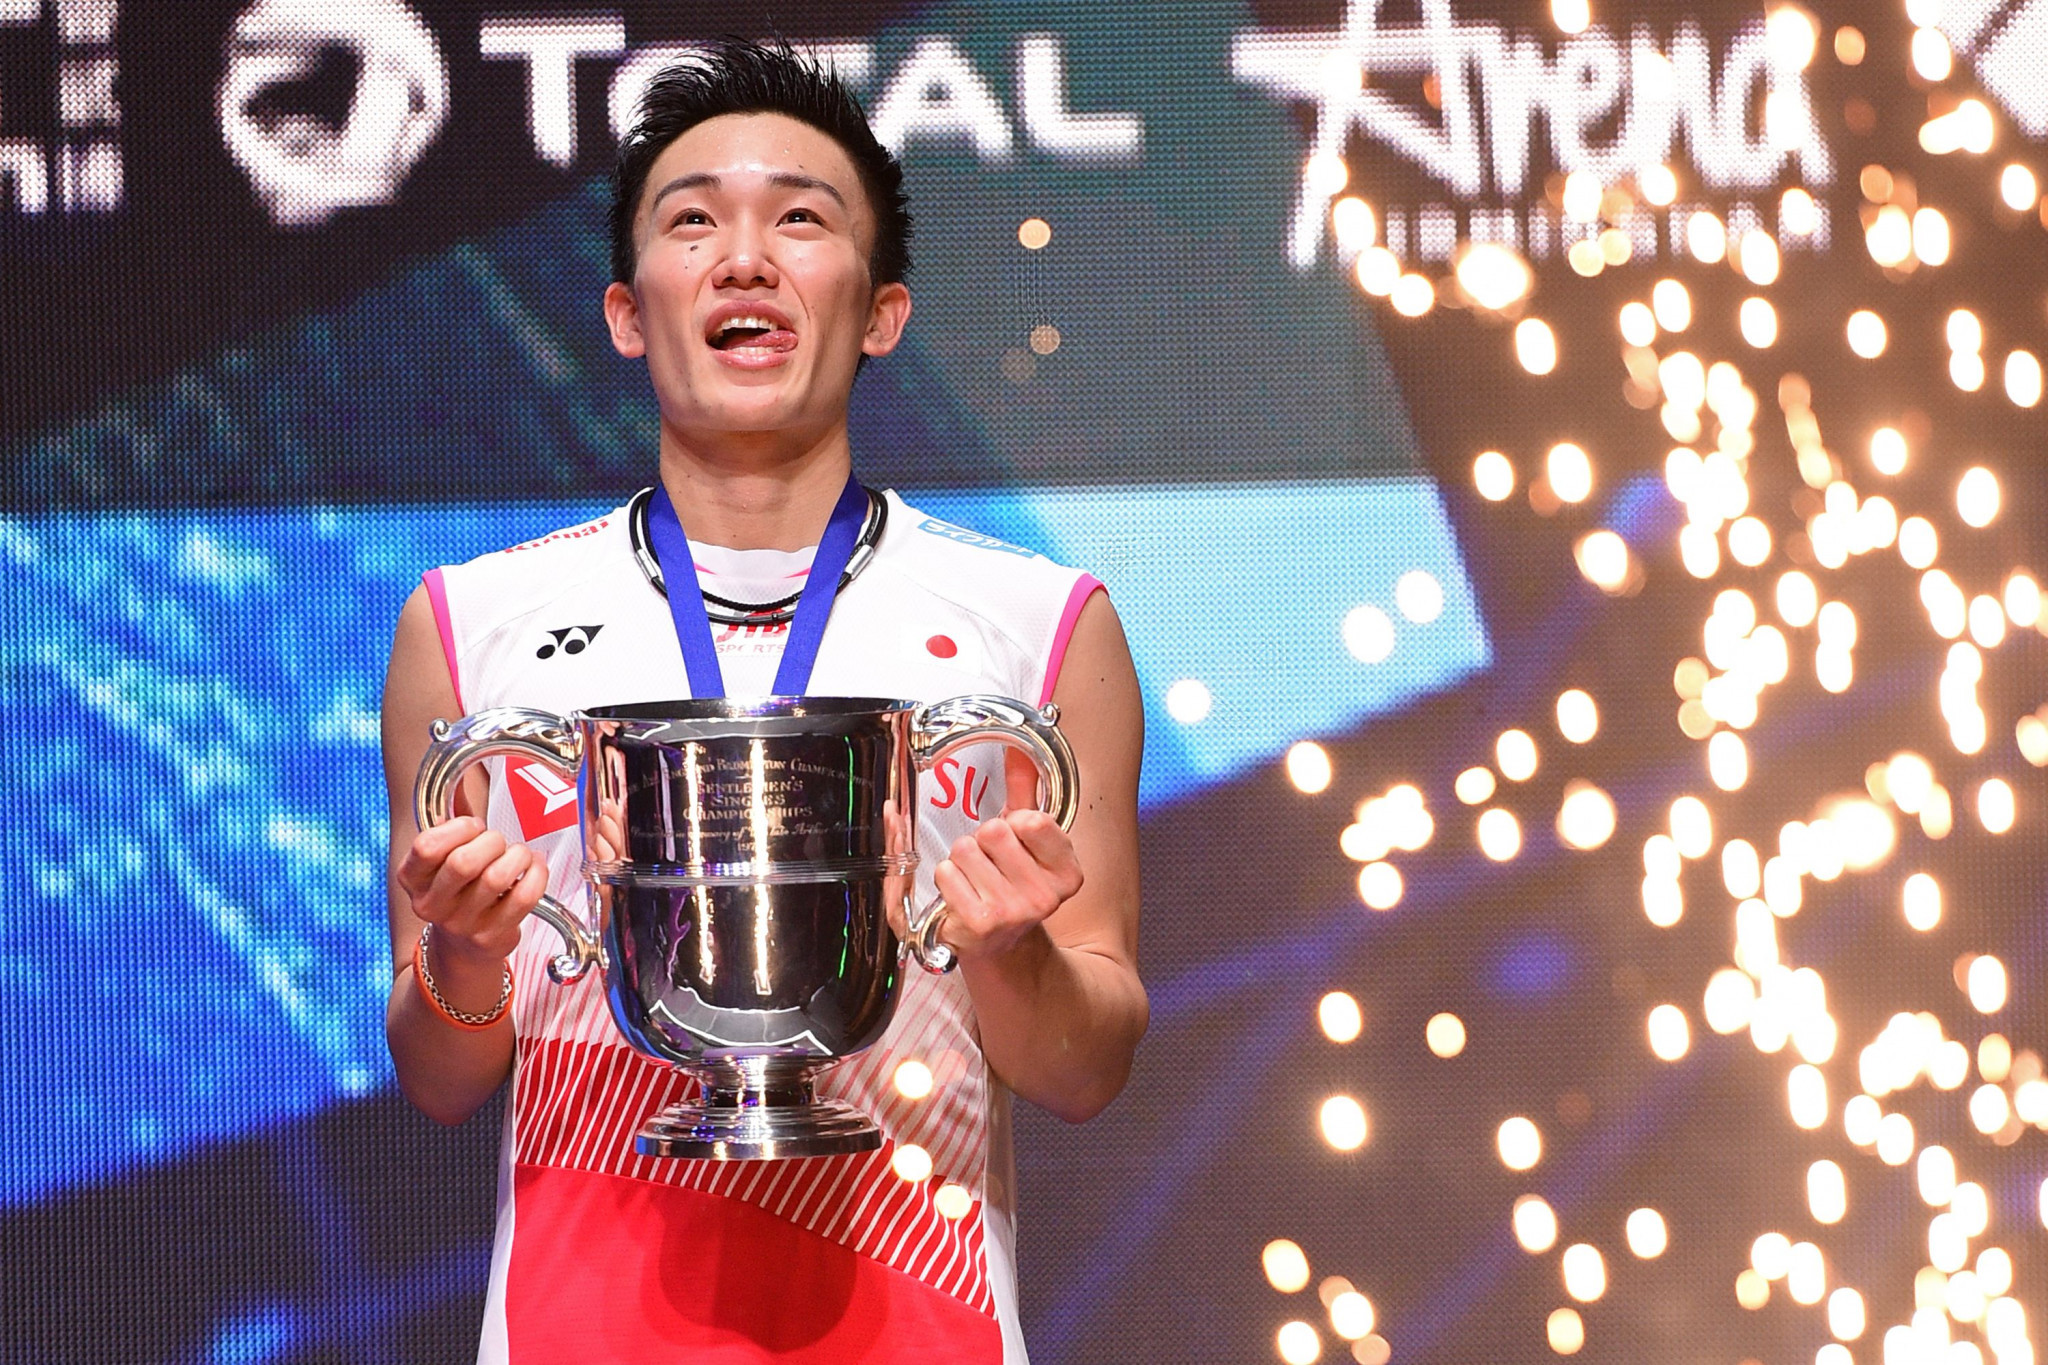 Momota and Chen win singles titles at All England Open Badminton Championships